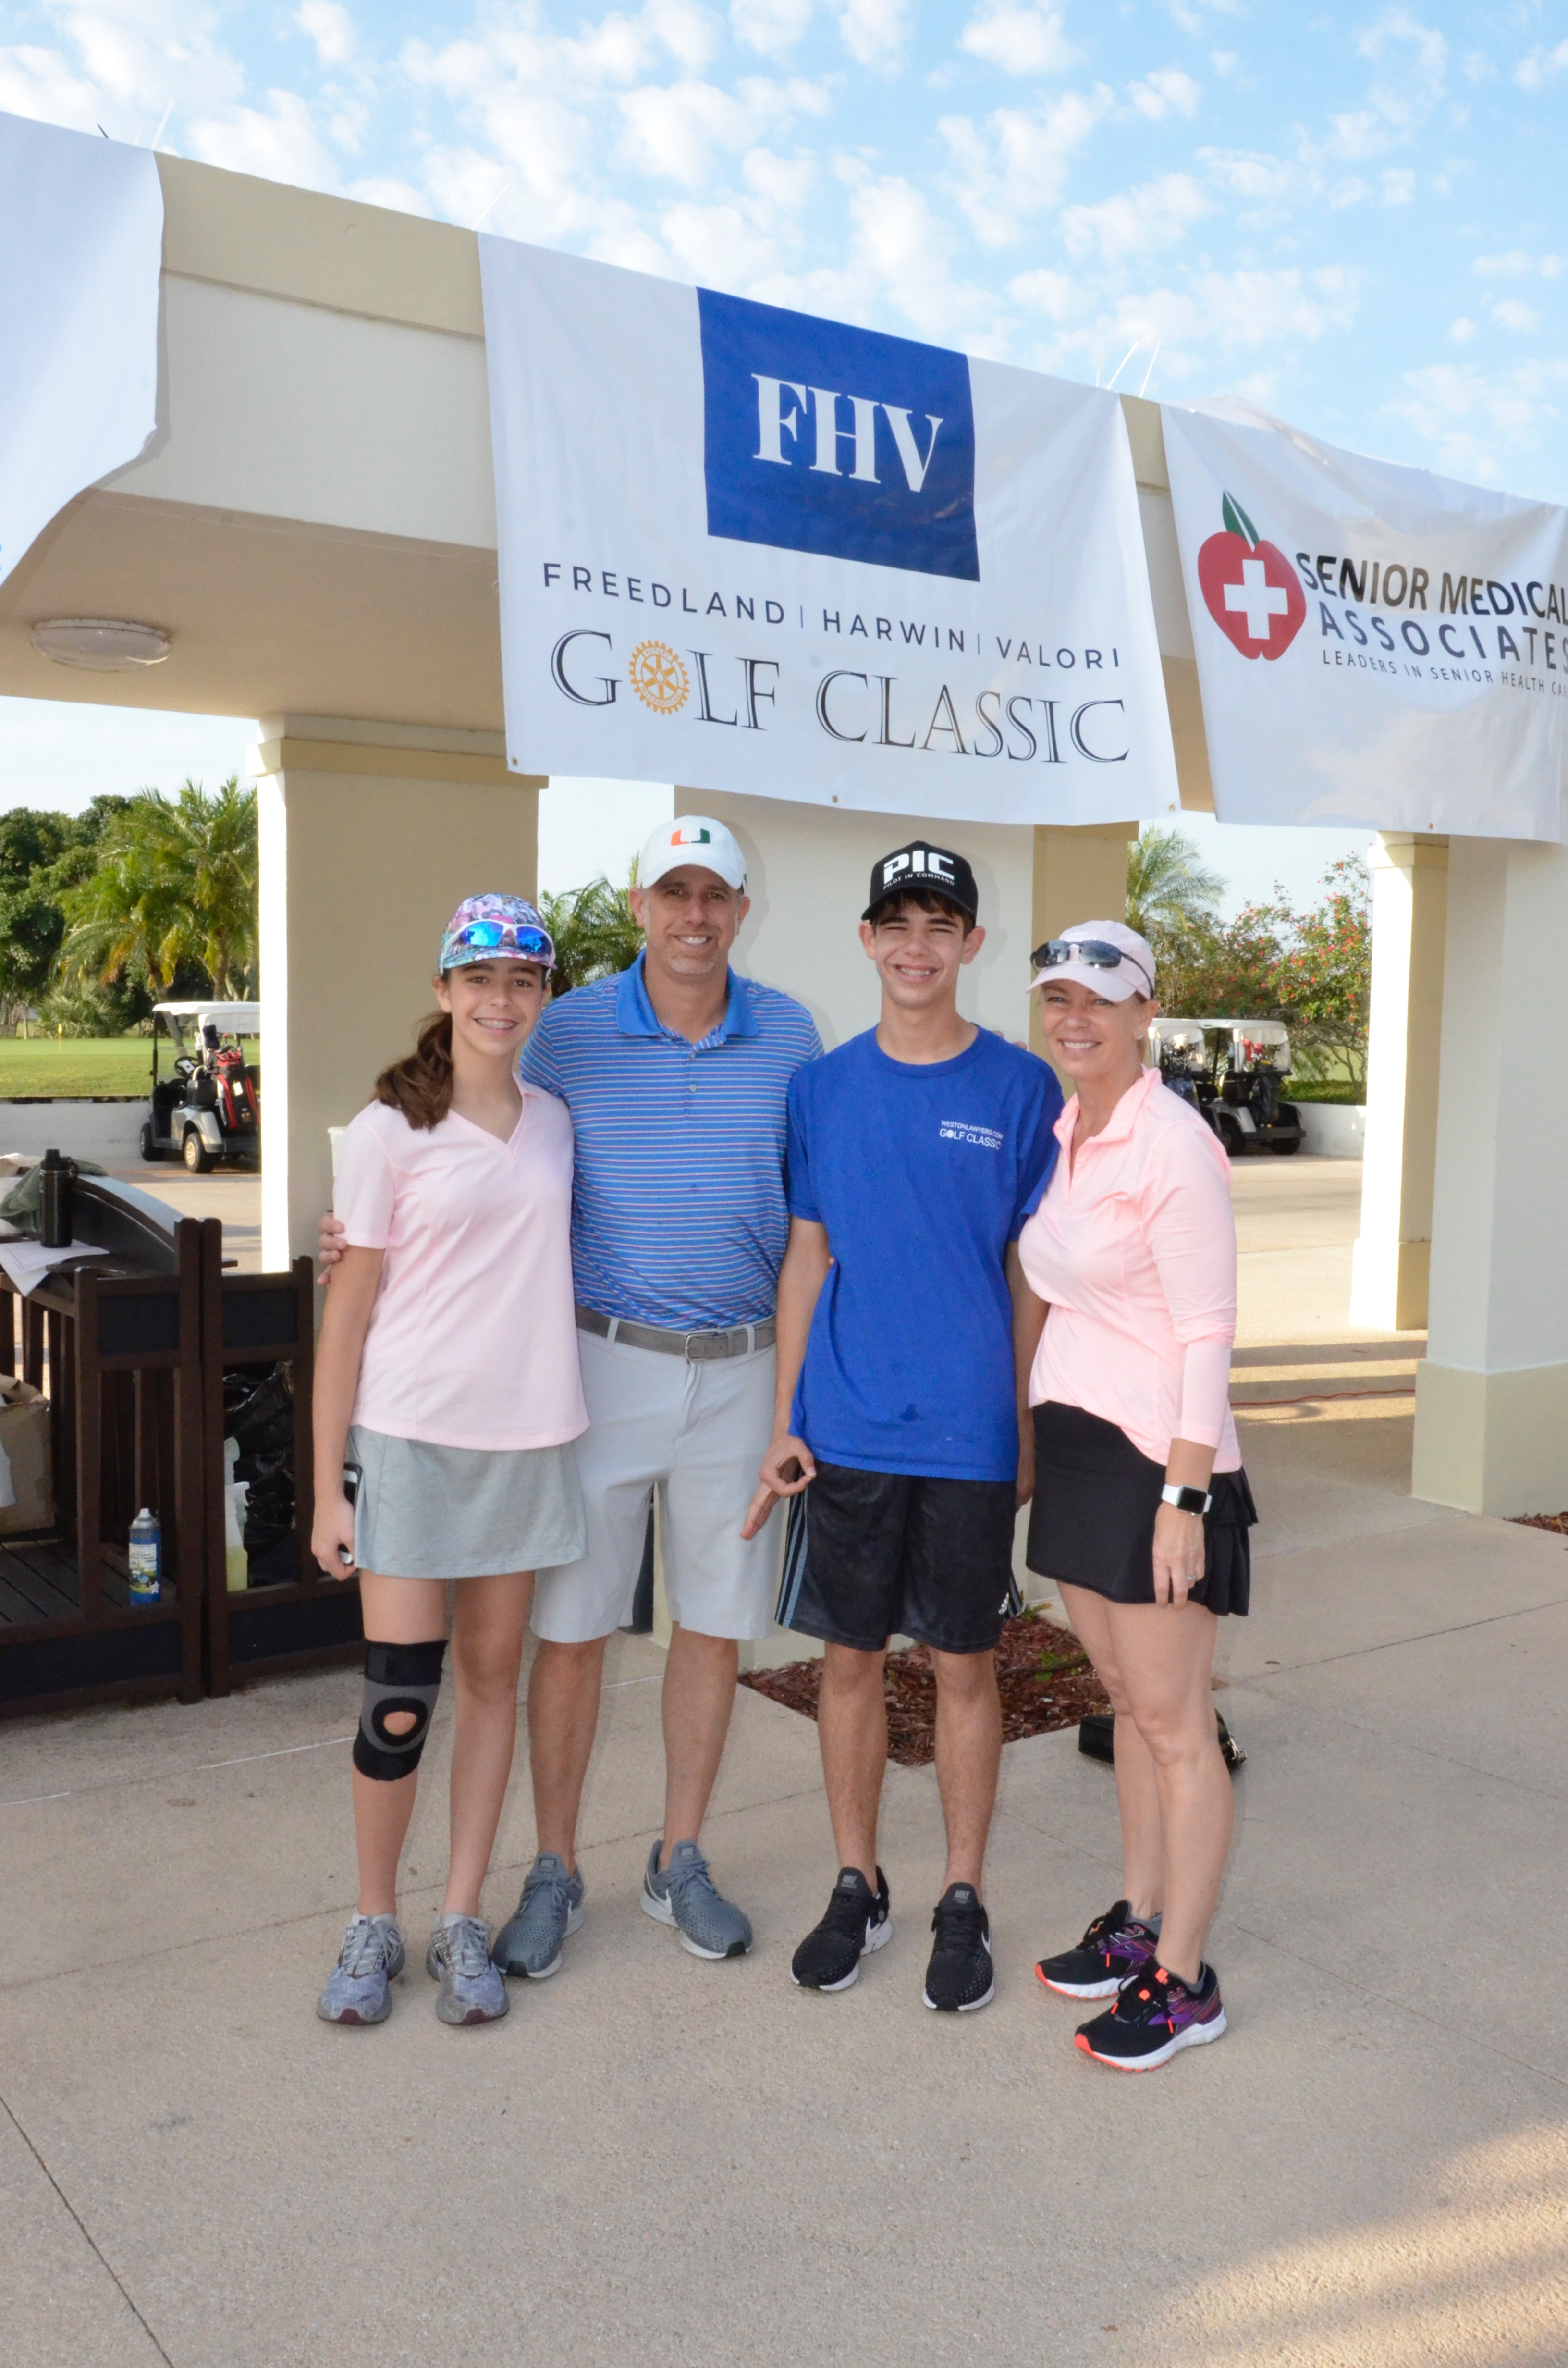 33rd Annual Rotary Golf Classic Sponsored by FHVLEGAL.COM gallery image #23